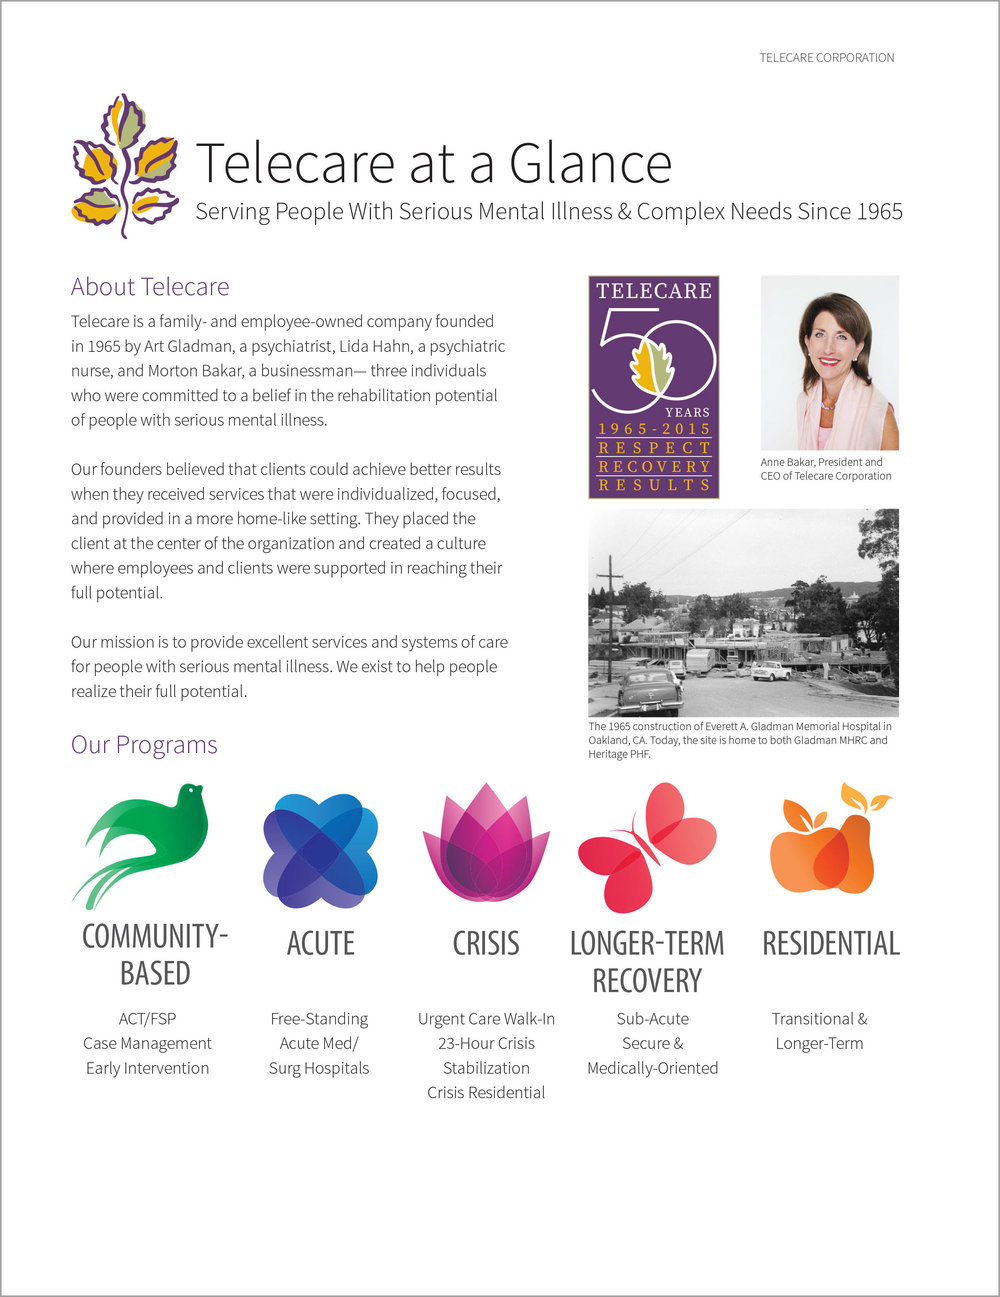 Telecare At a Glance